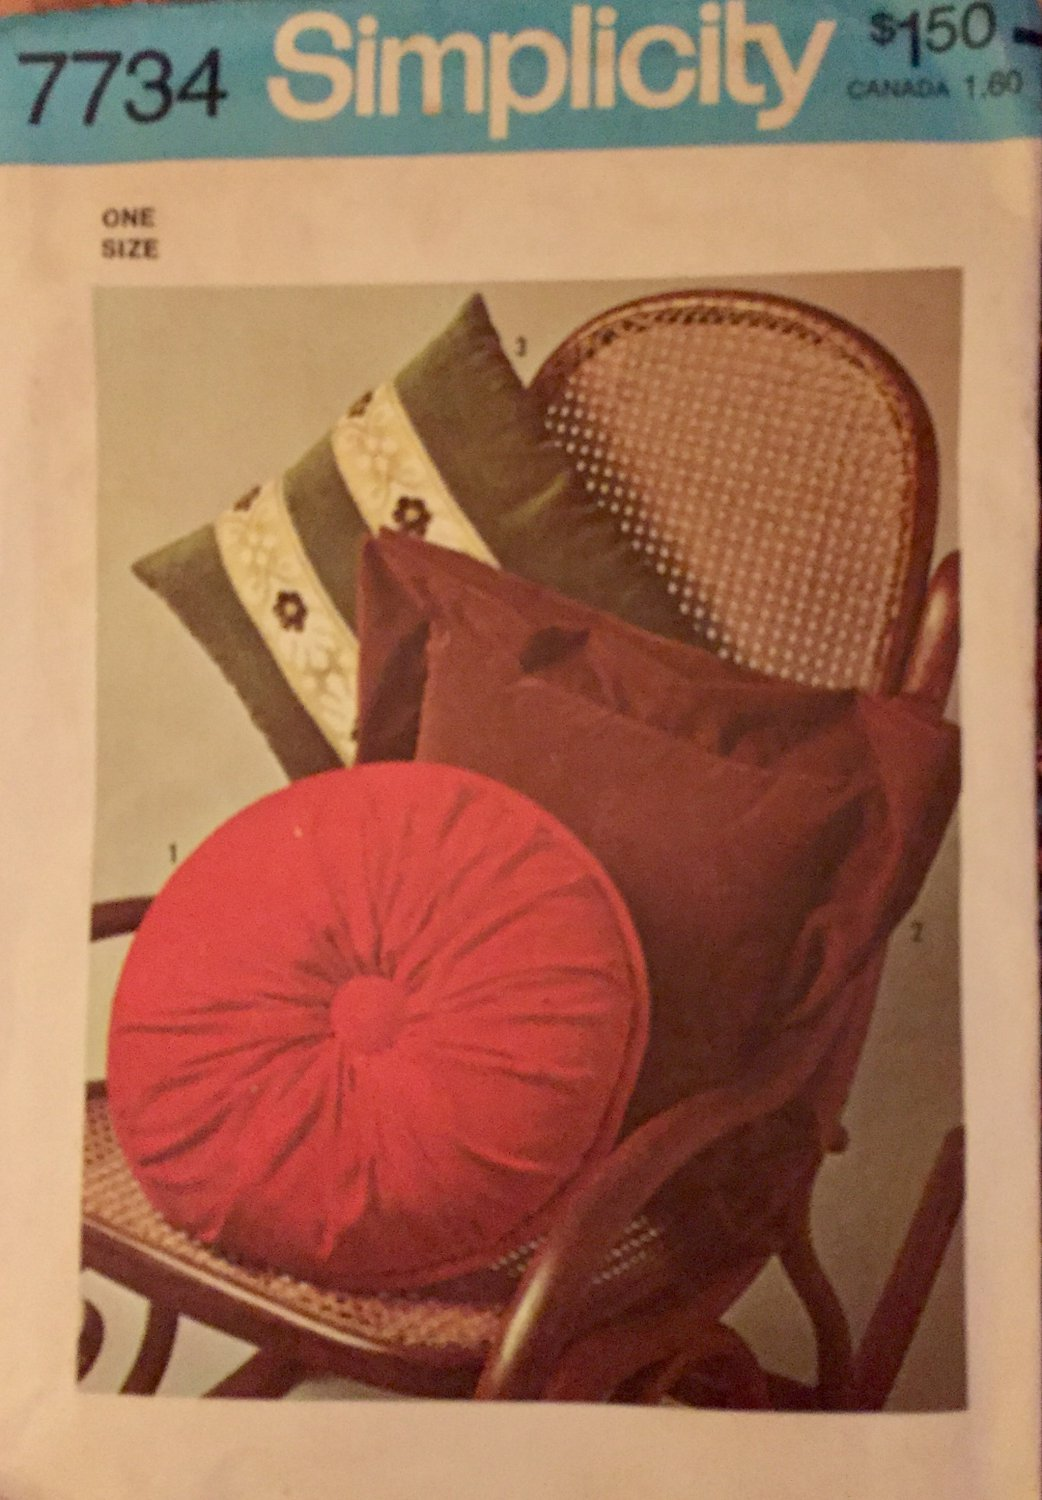 Simplicity 7734 Sewing Pattern 3 Types of Pillows  1976 vintage pattern